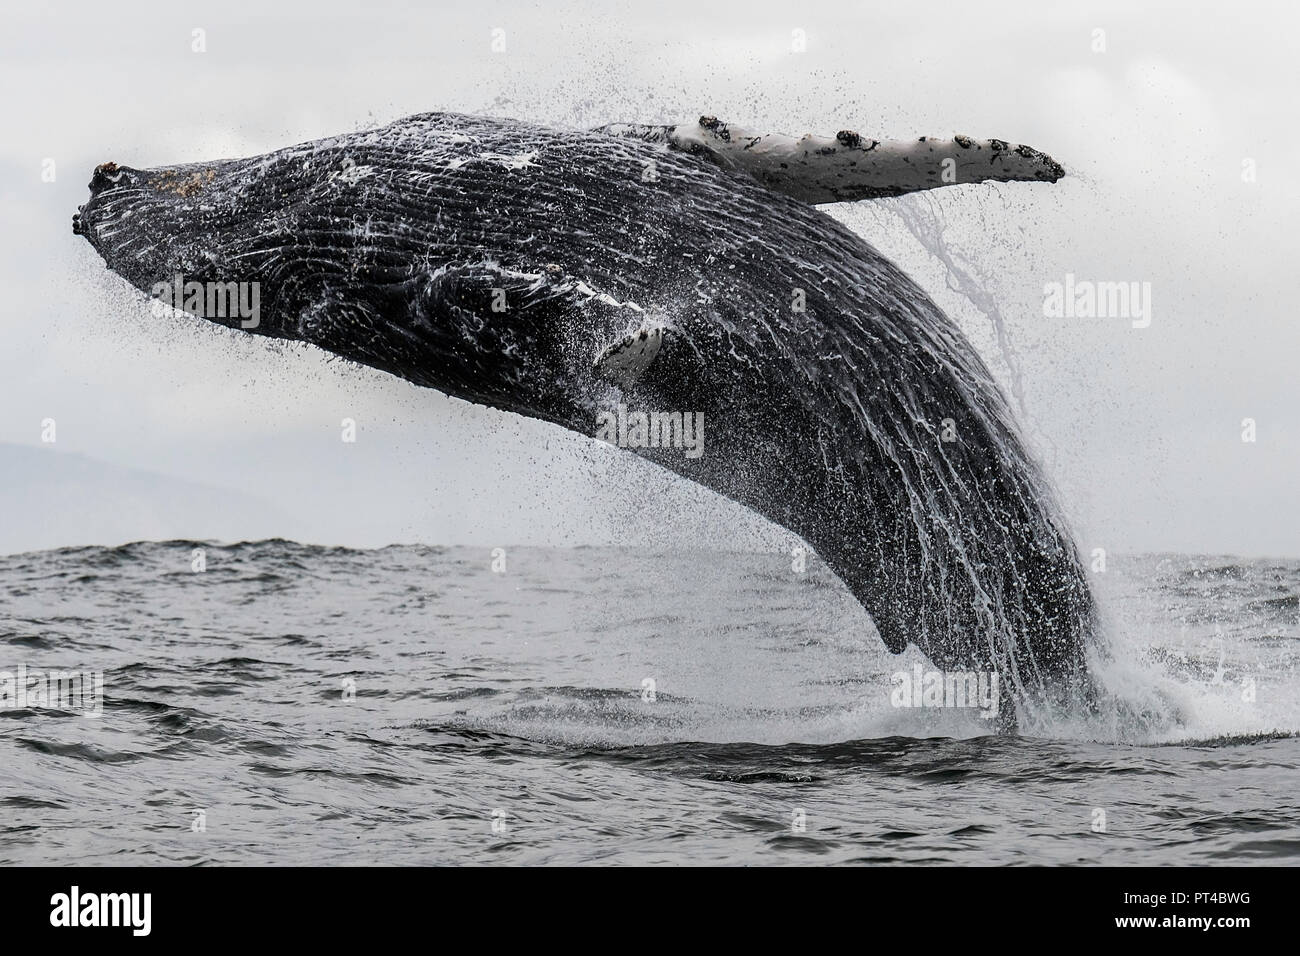 Breaching humpback whale, Langebaan, South Africa. - Stock Image